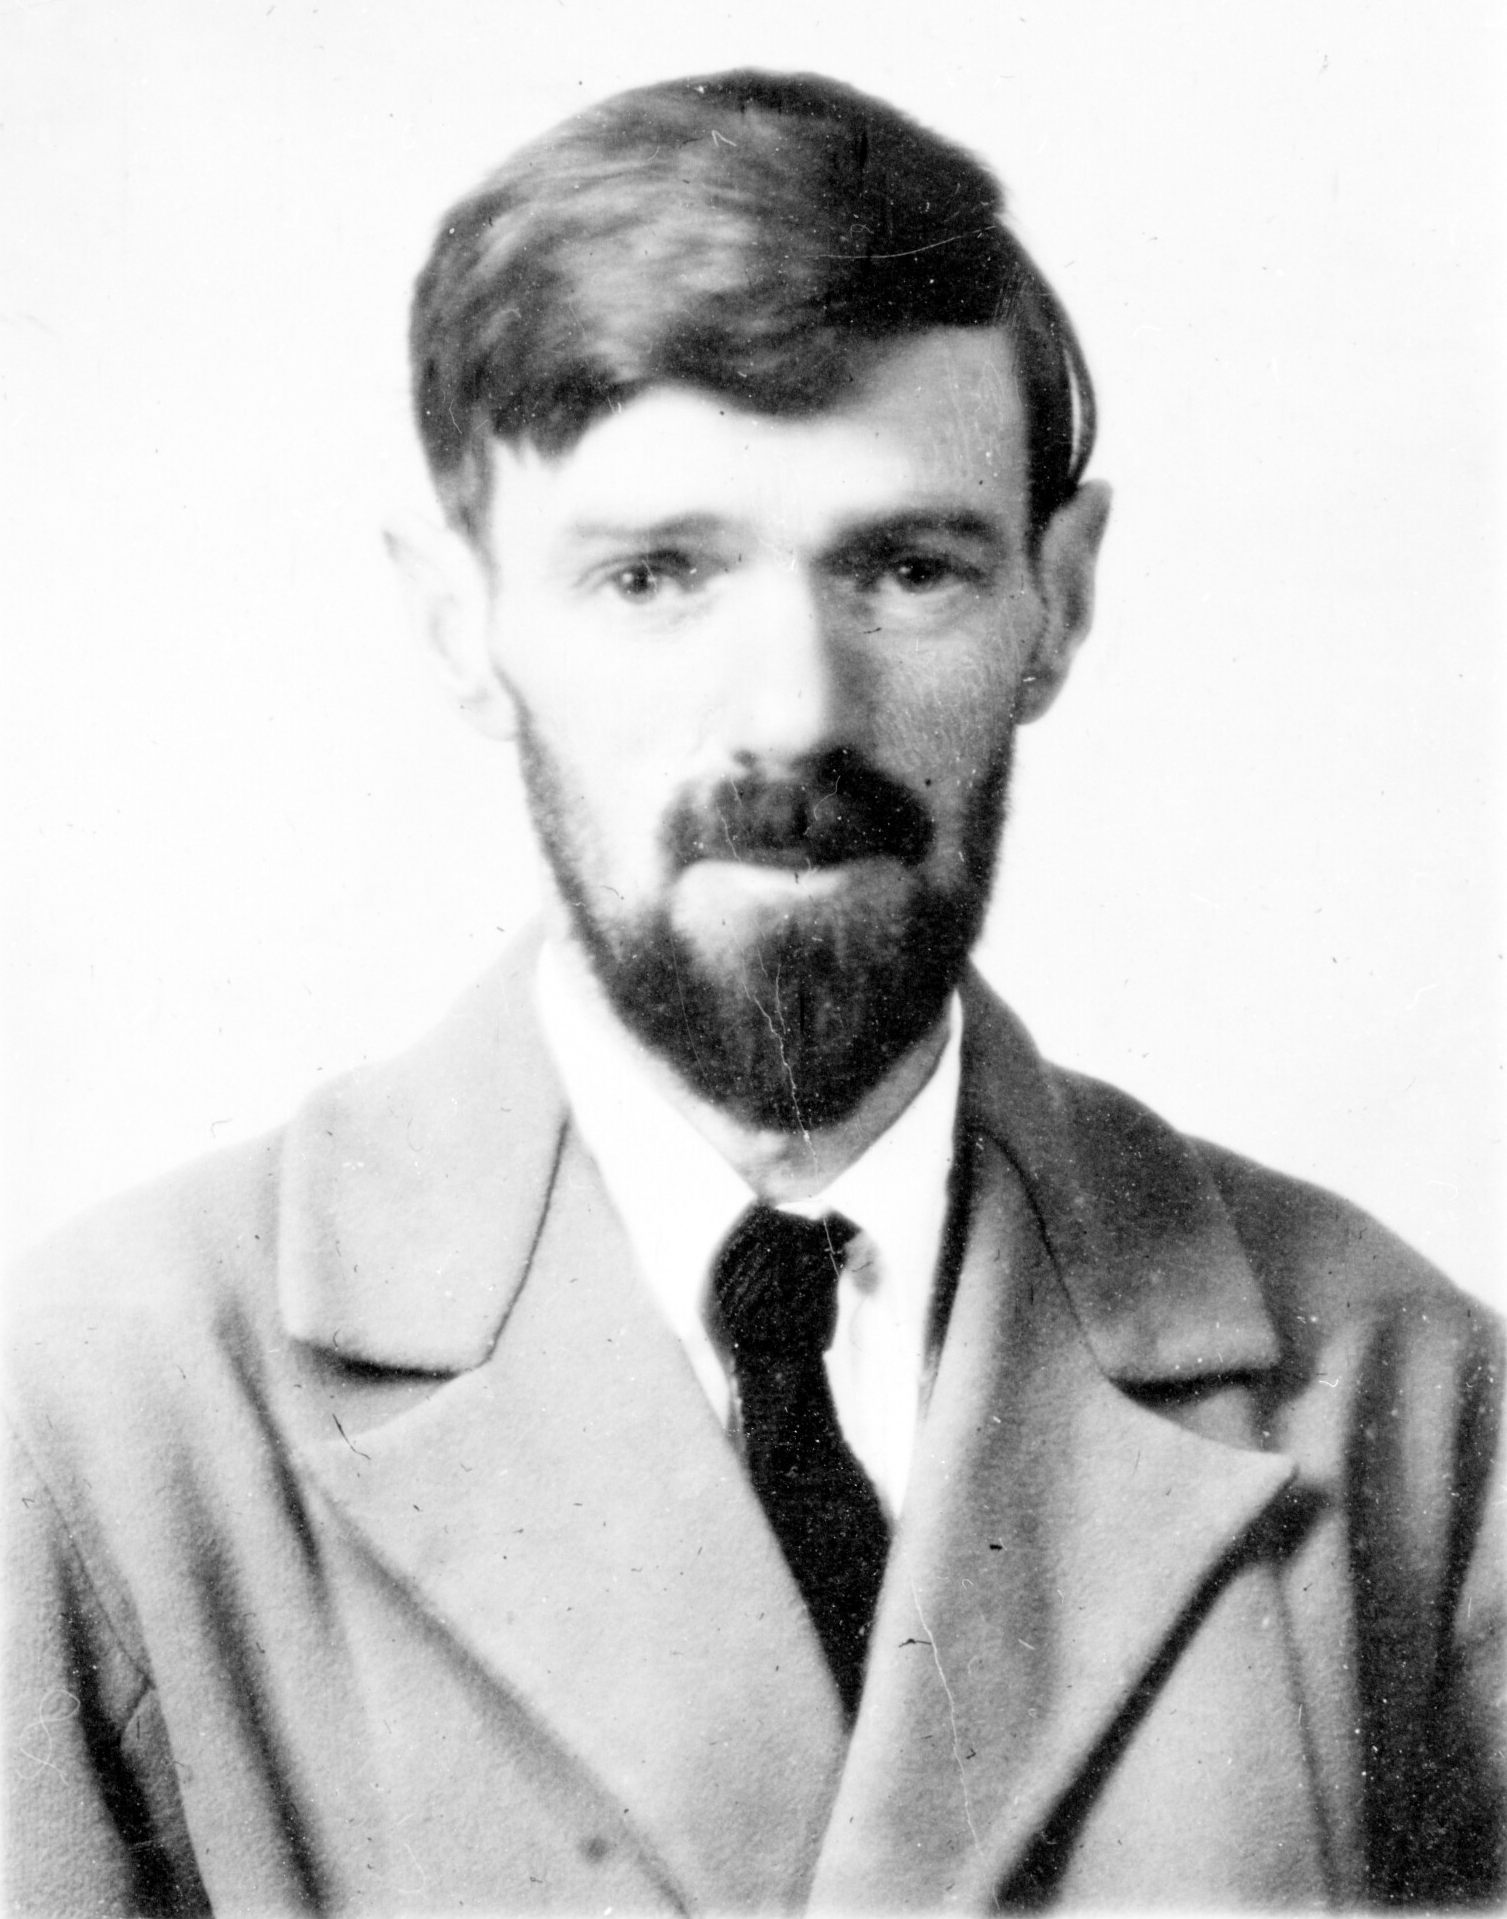 Portrait of D. H. Lawrence